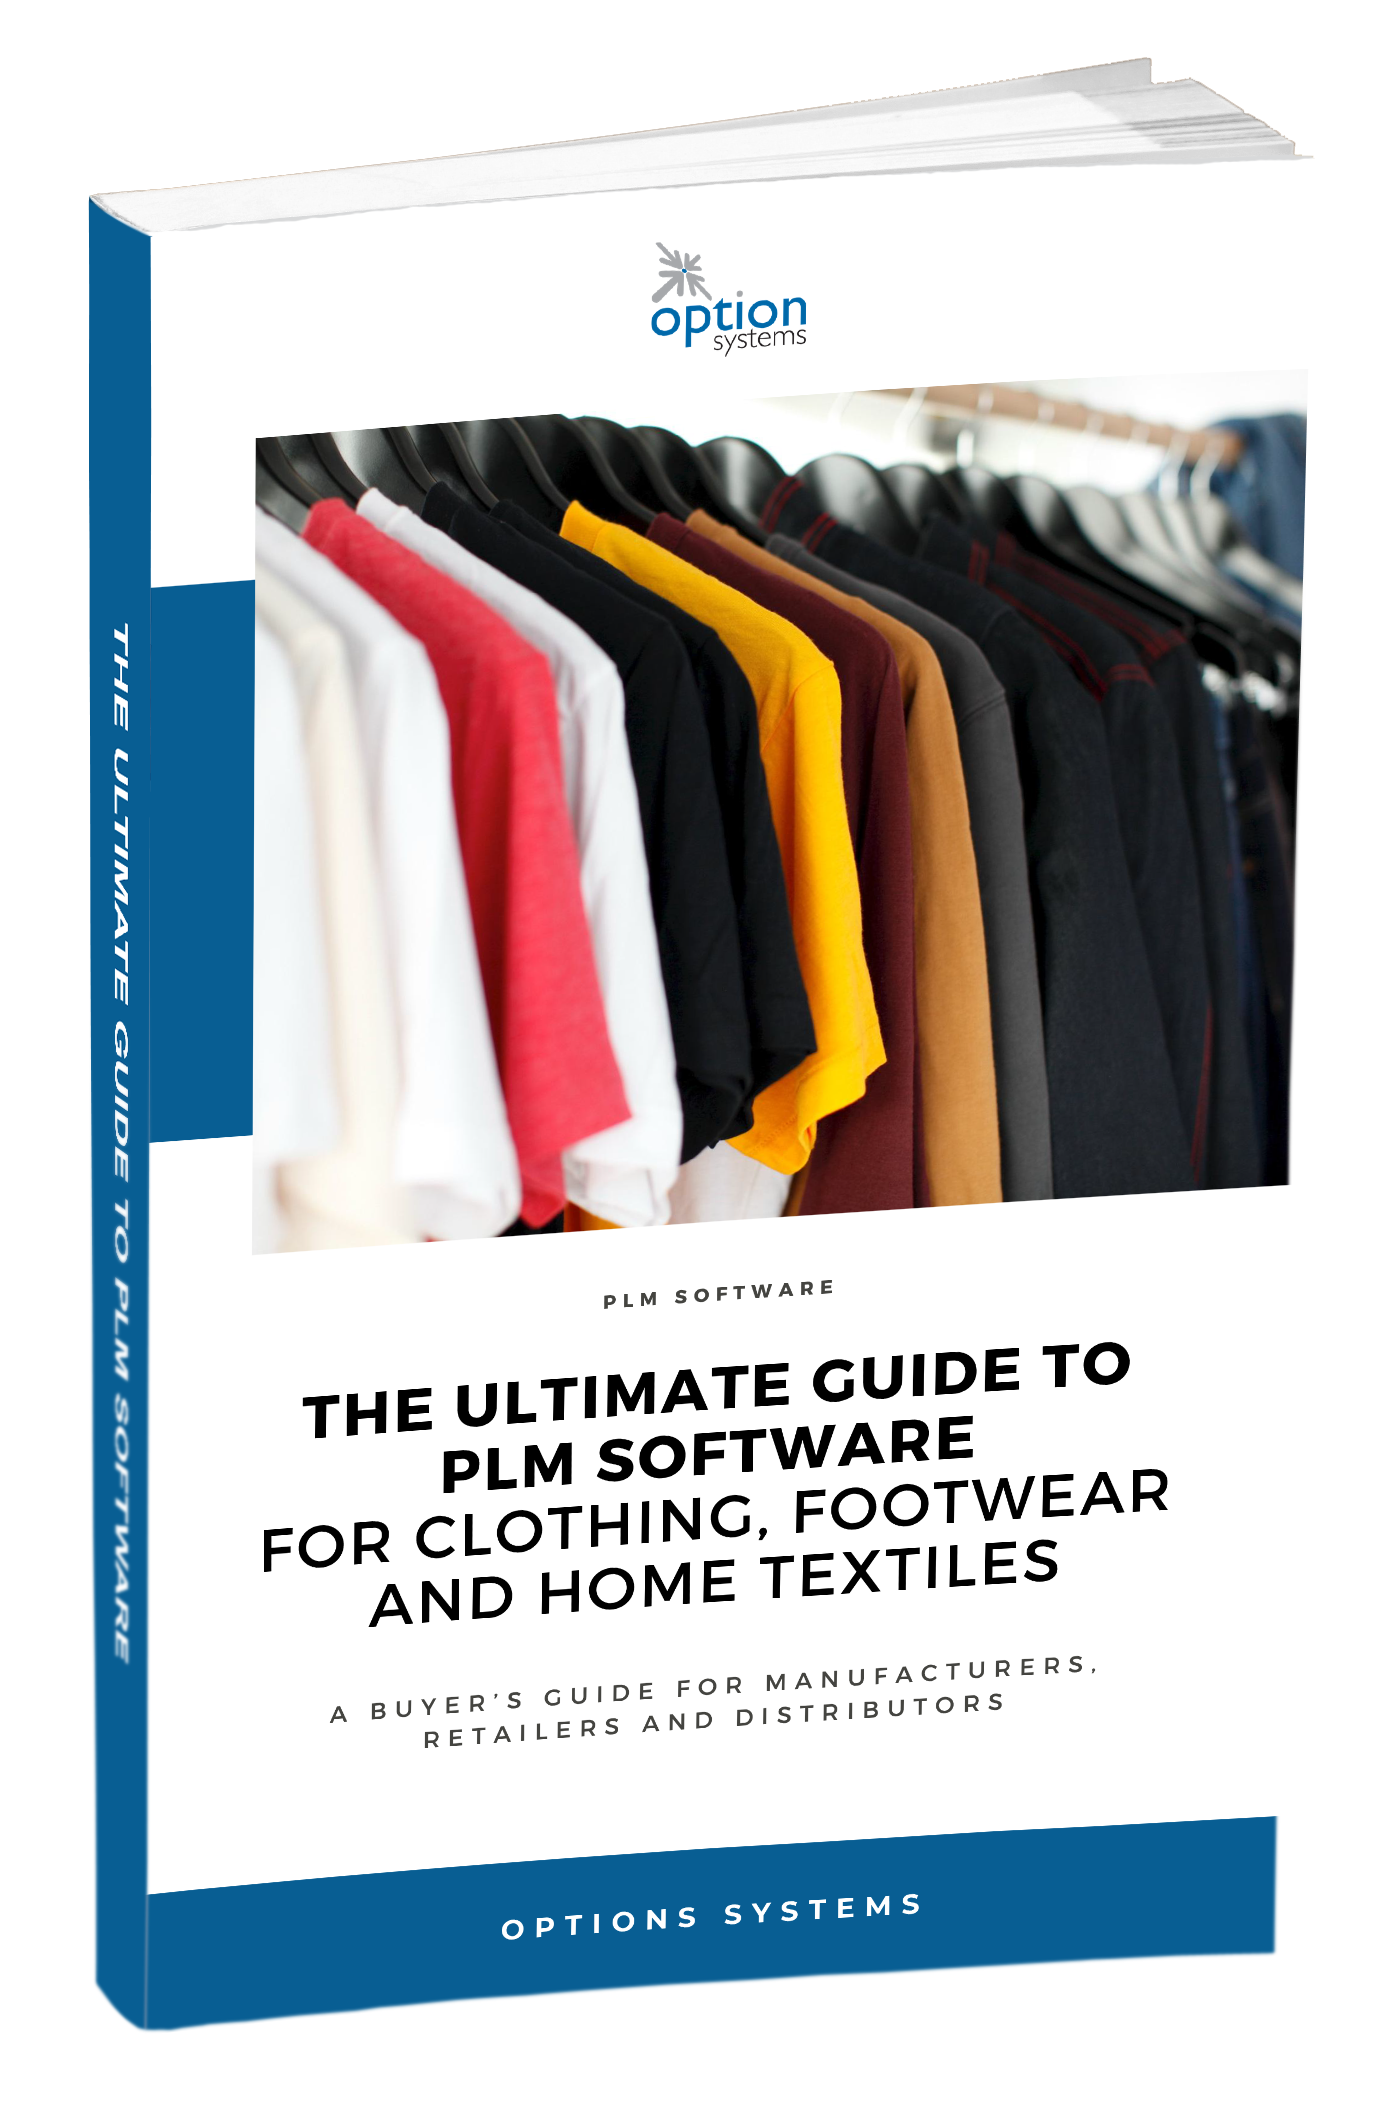 The-Ultimate-Guide-To-PLM-Software-Mockup